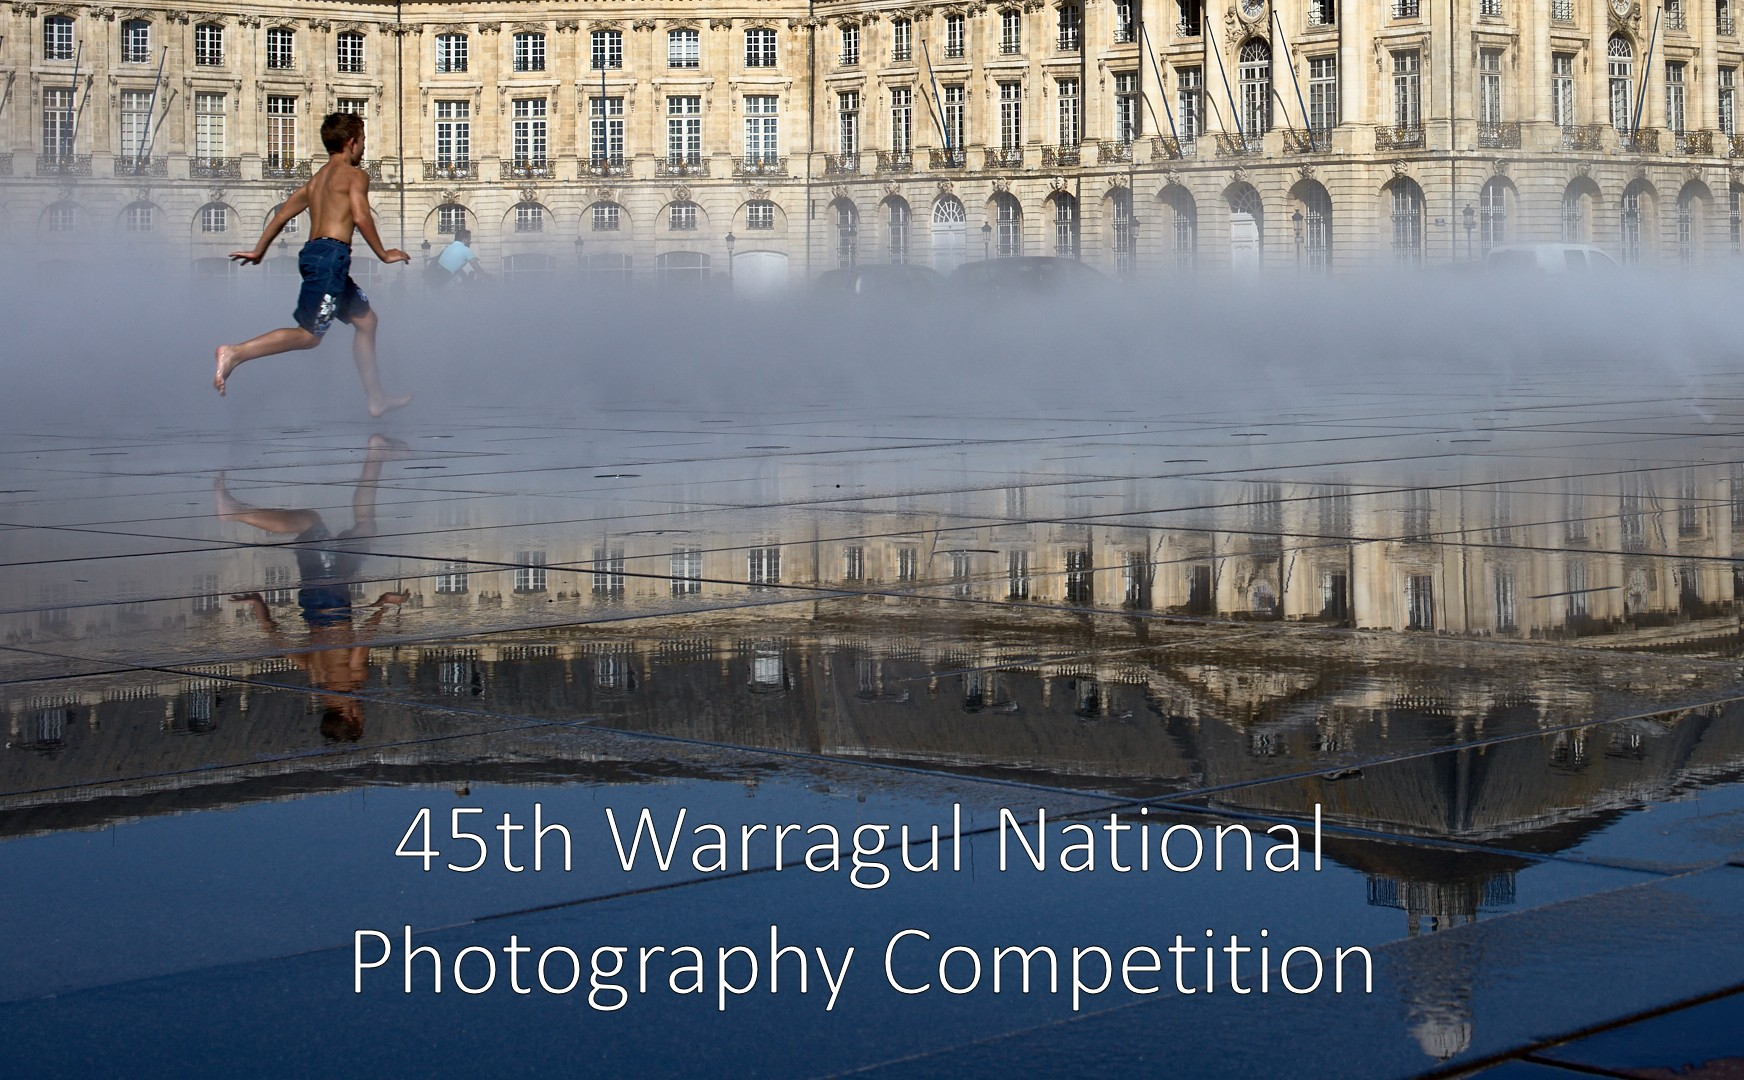 45th Warragul National Photographic Competition and Exhibition - logo